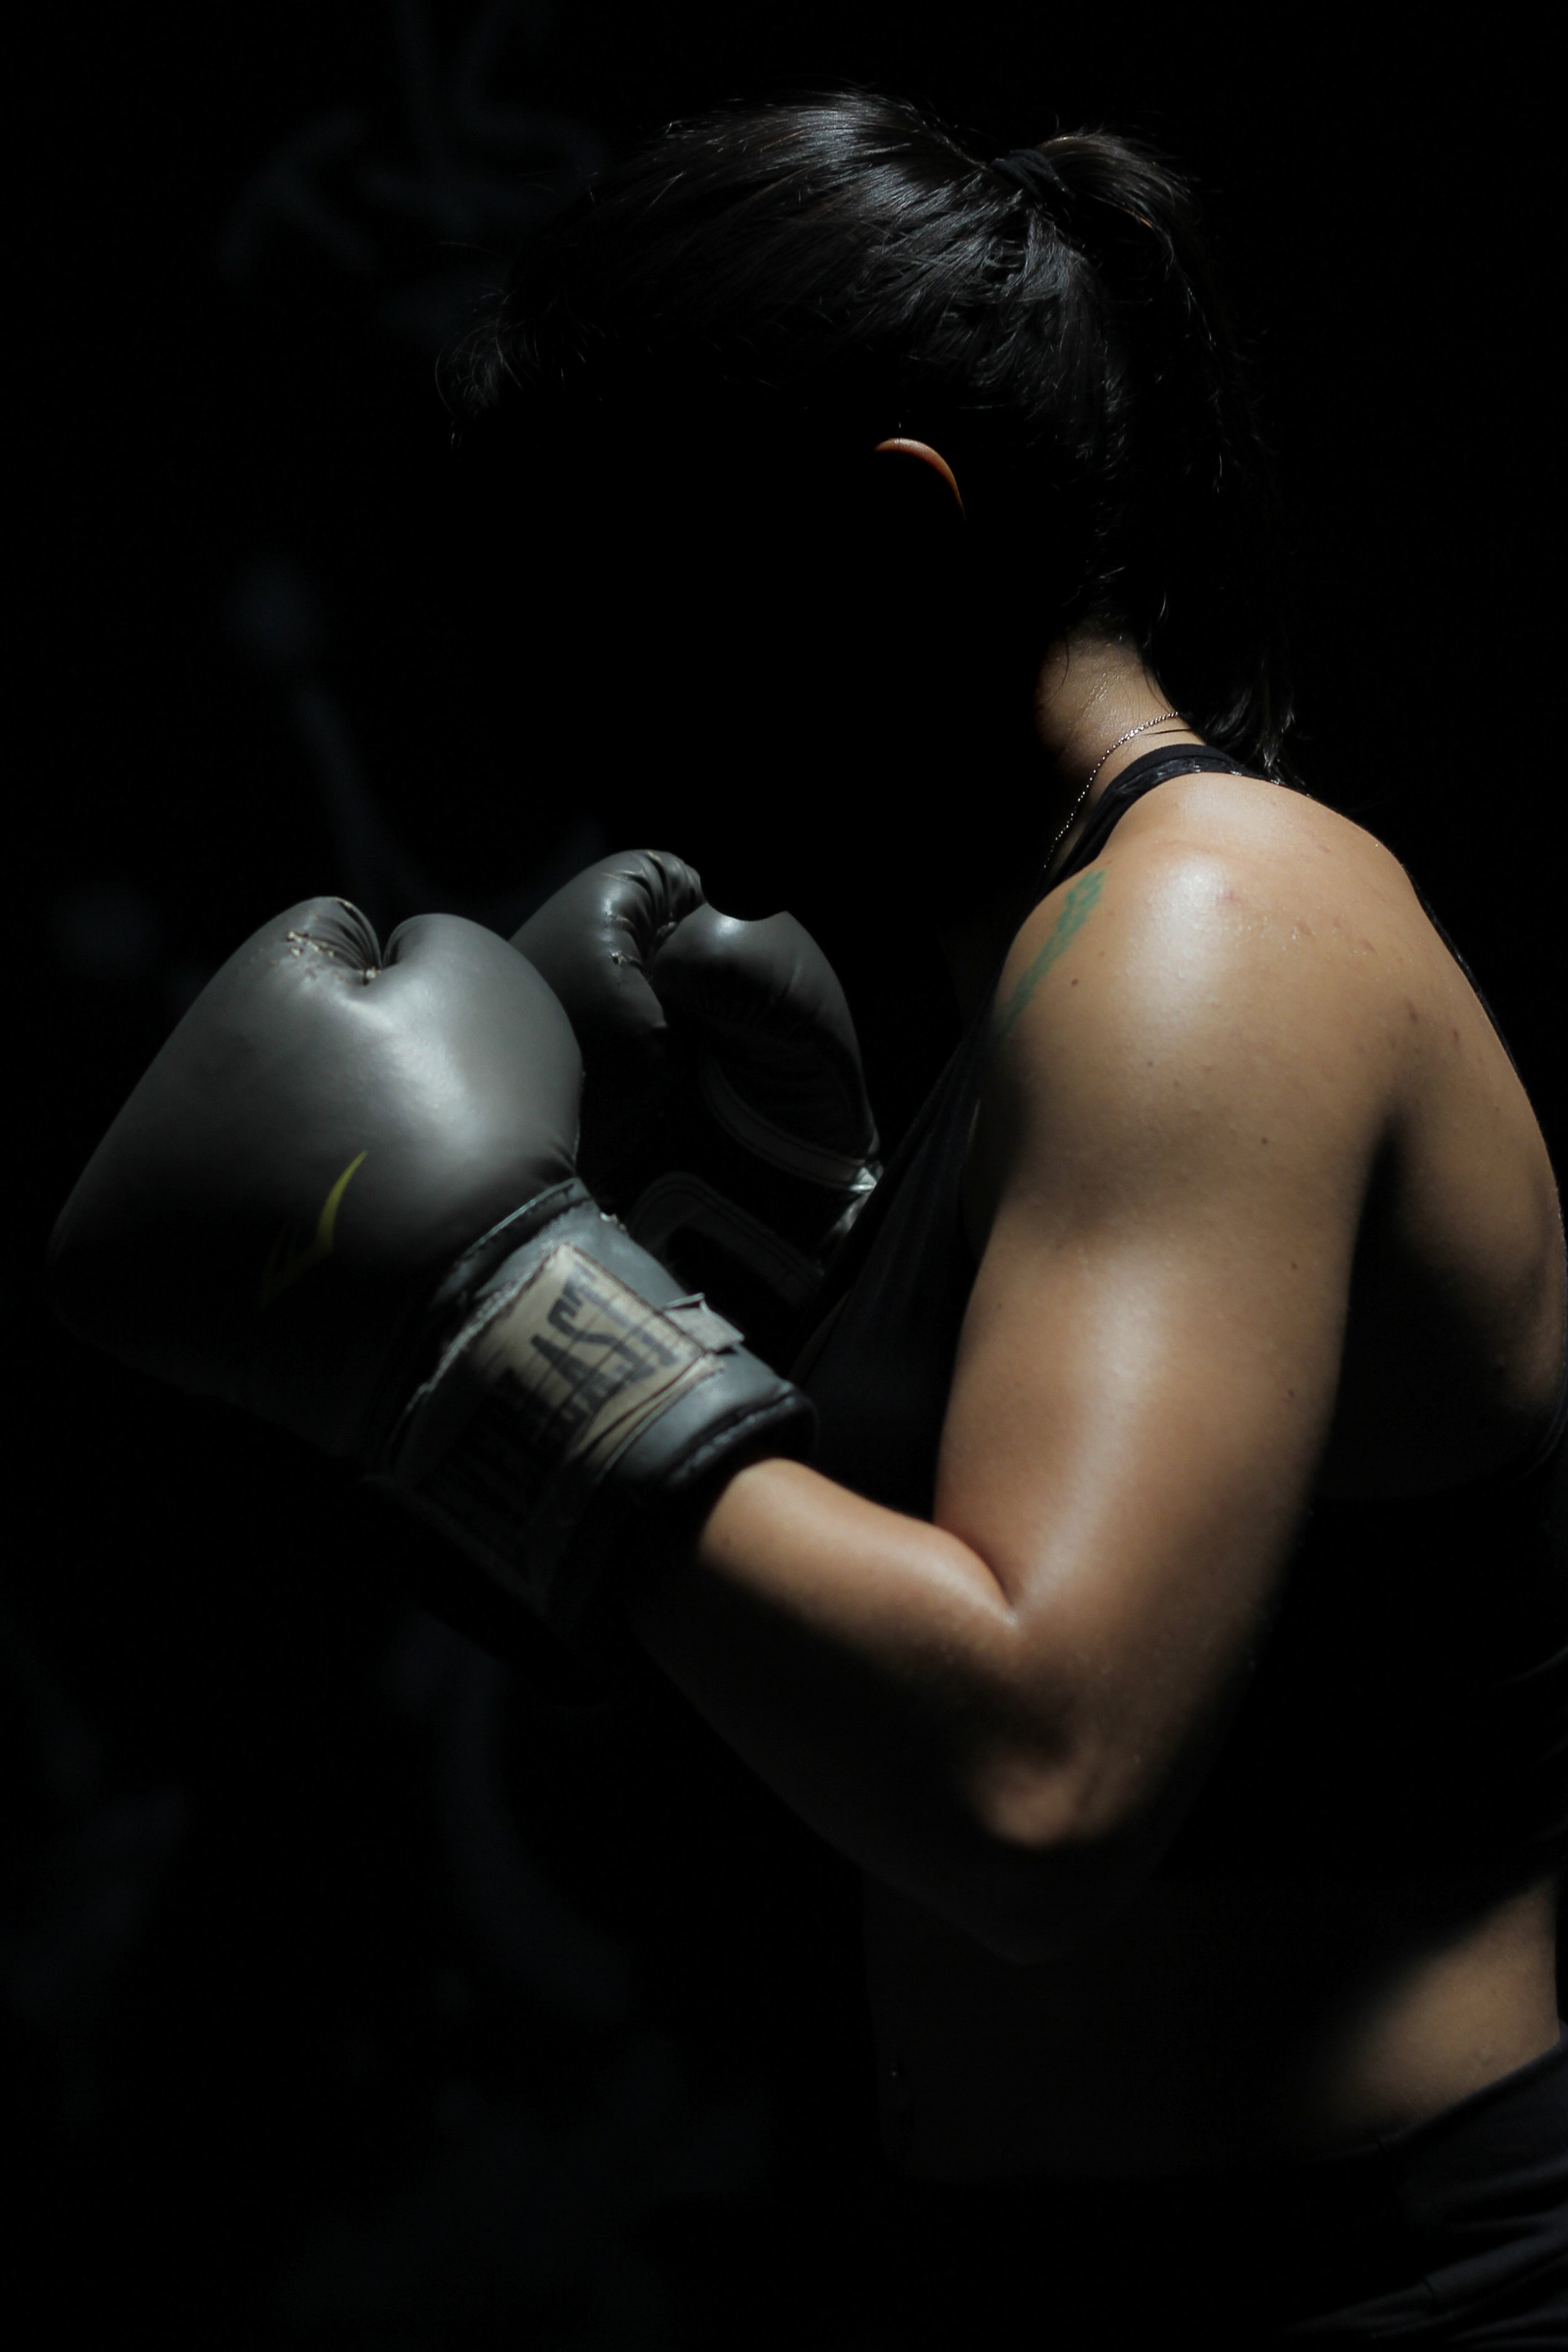 athlete-boxer-boxing-1608099.jpg